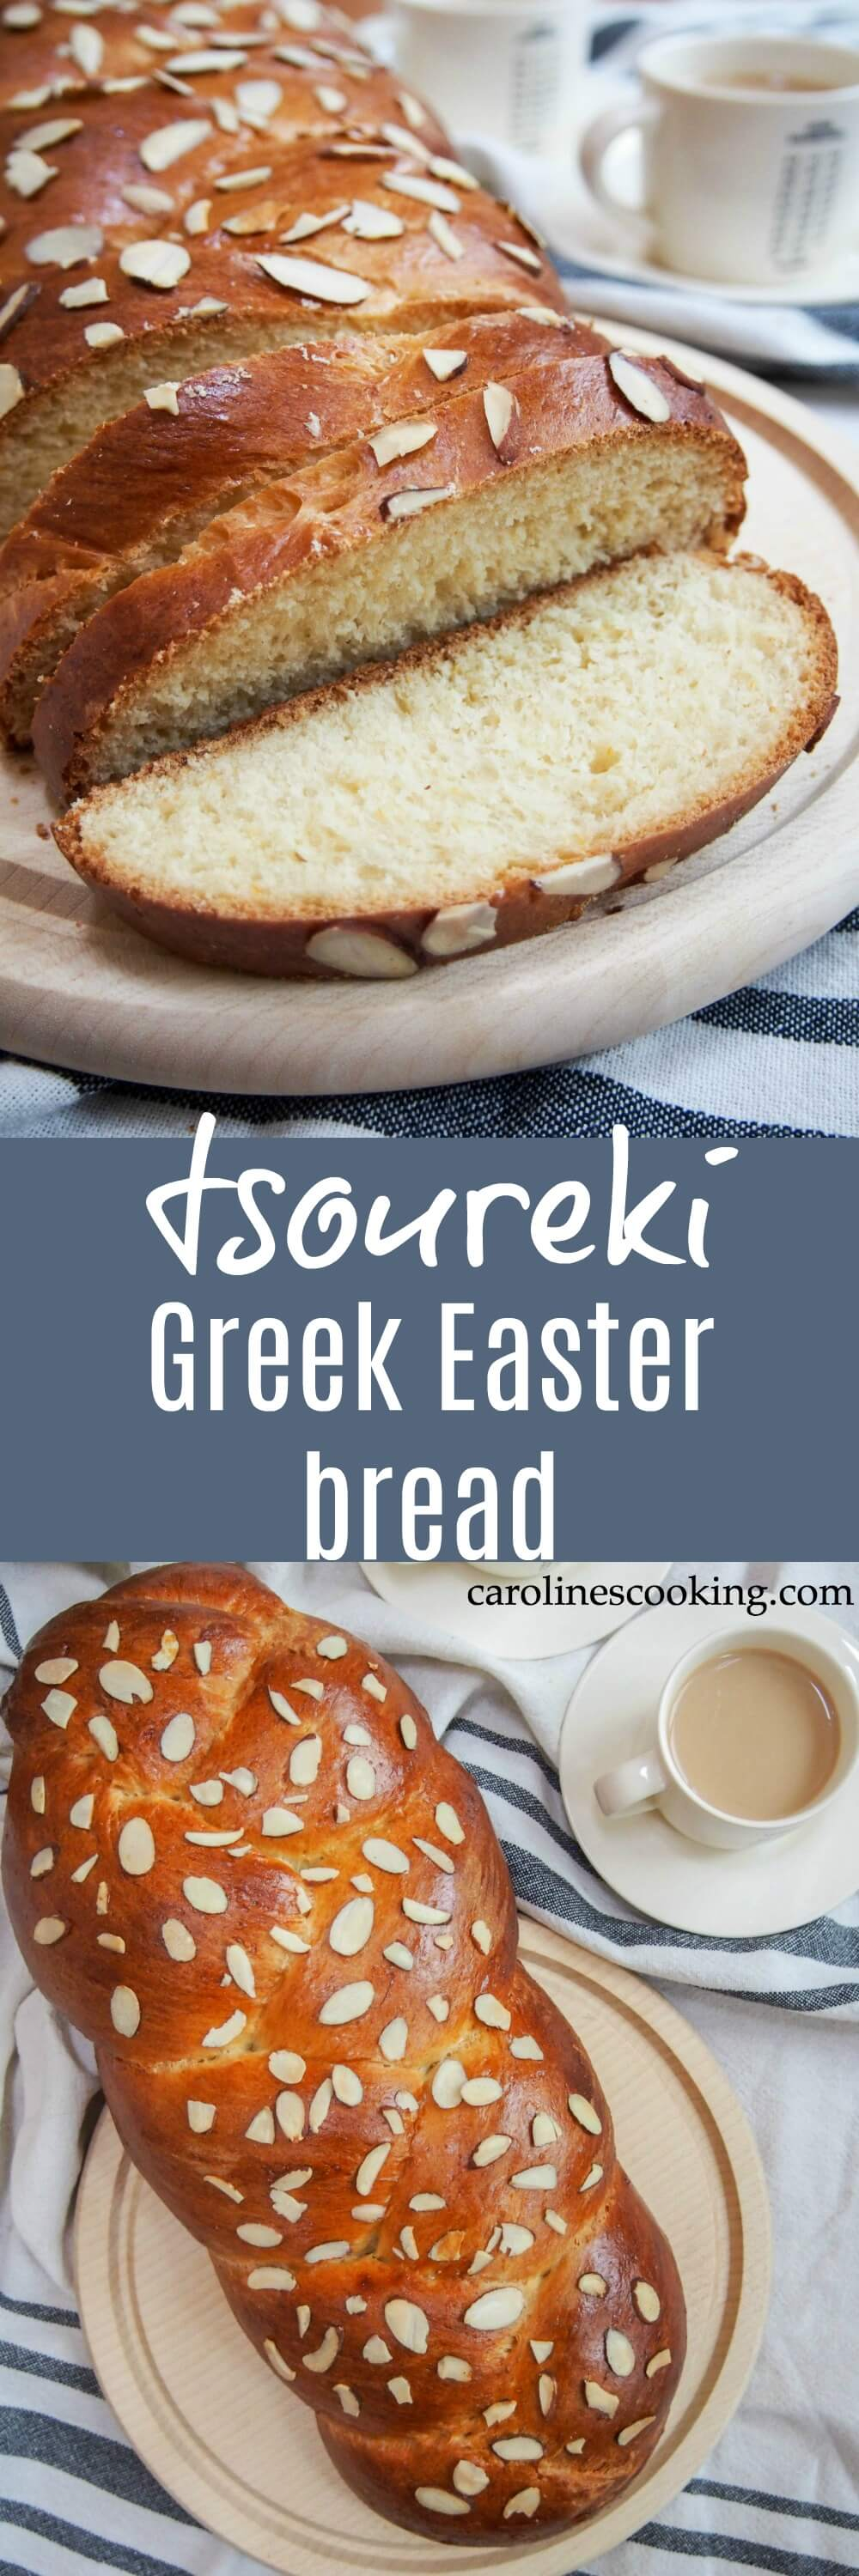 Tsoureki is the traditional Greek Easter bread that's a deliciously soft, gently sweet yeast bread similar to brioche or challah but with it's own distinctive flavor. It's wonderful enjoyed on it's own when fresh and leftovers make fantastic French toast. #bread #Greekfood #Easter